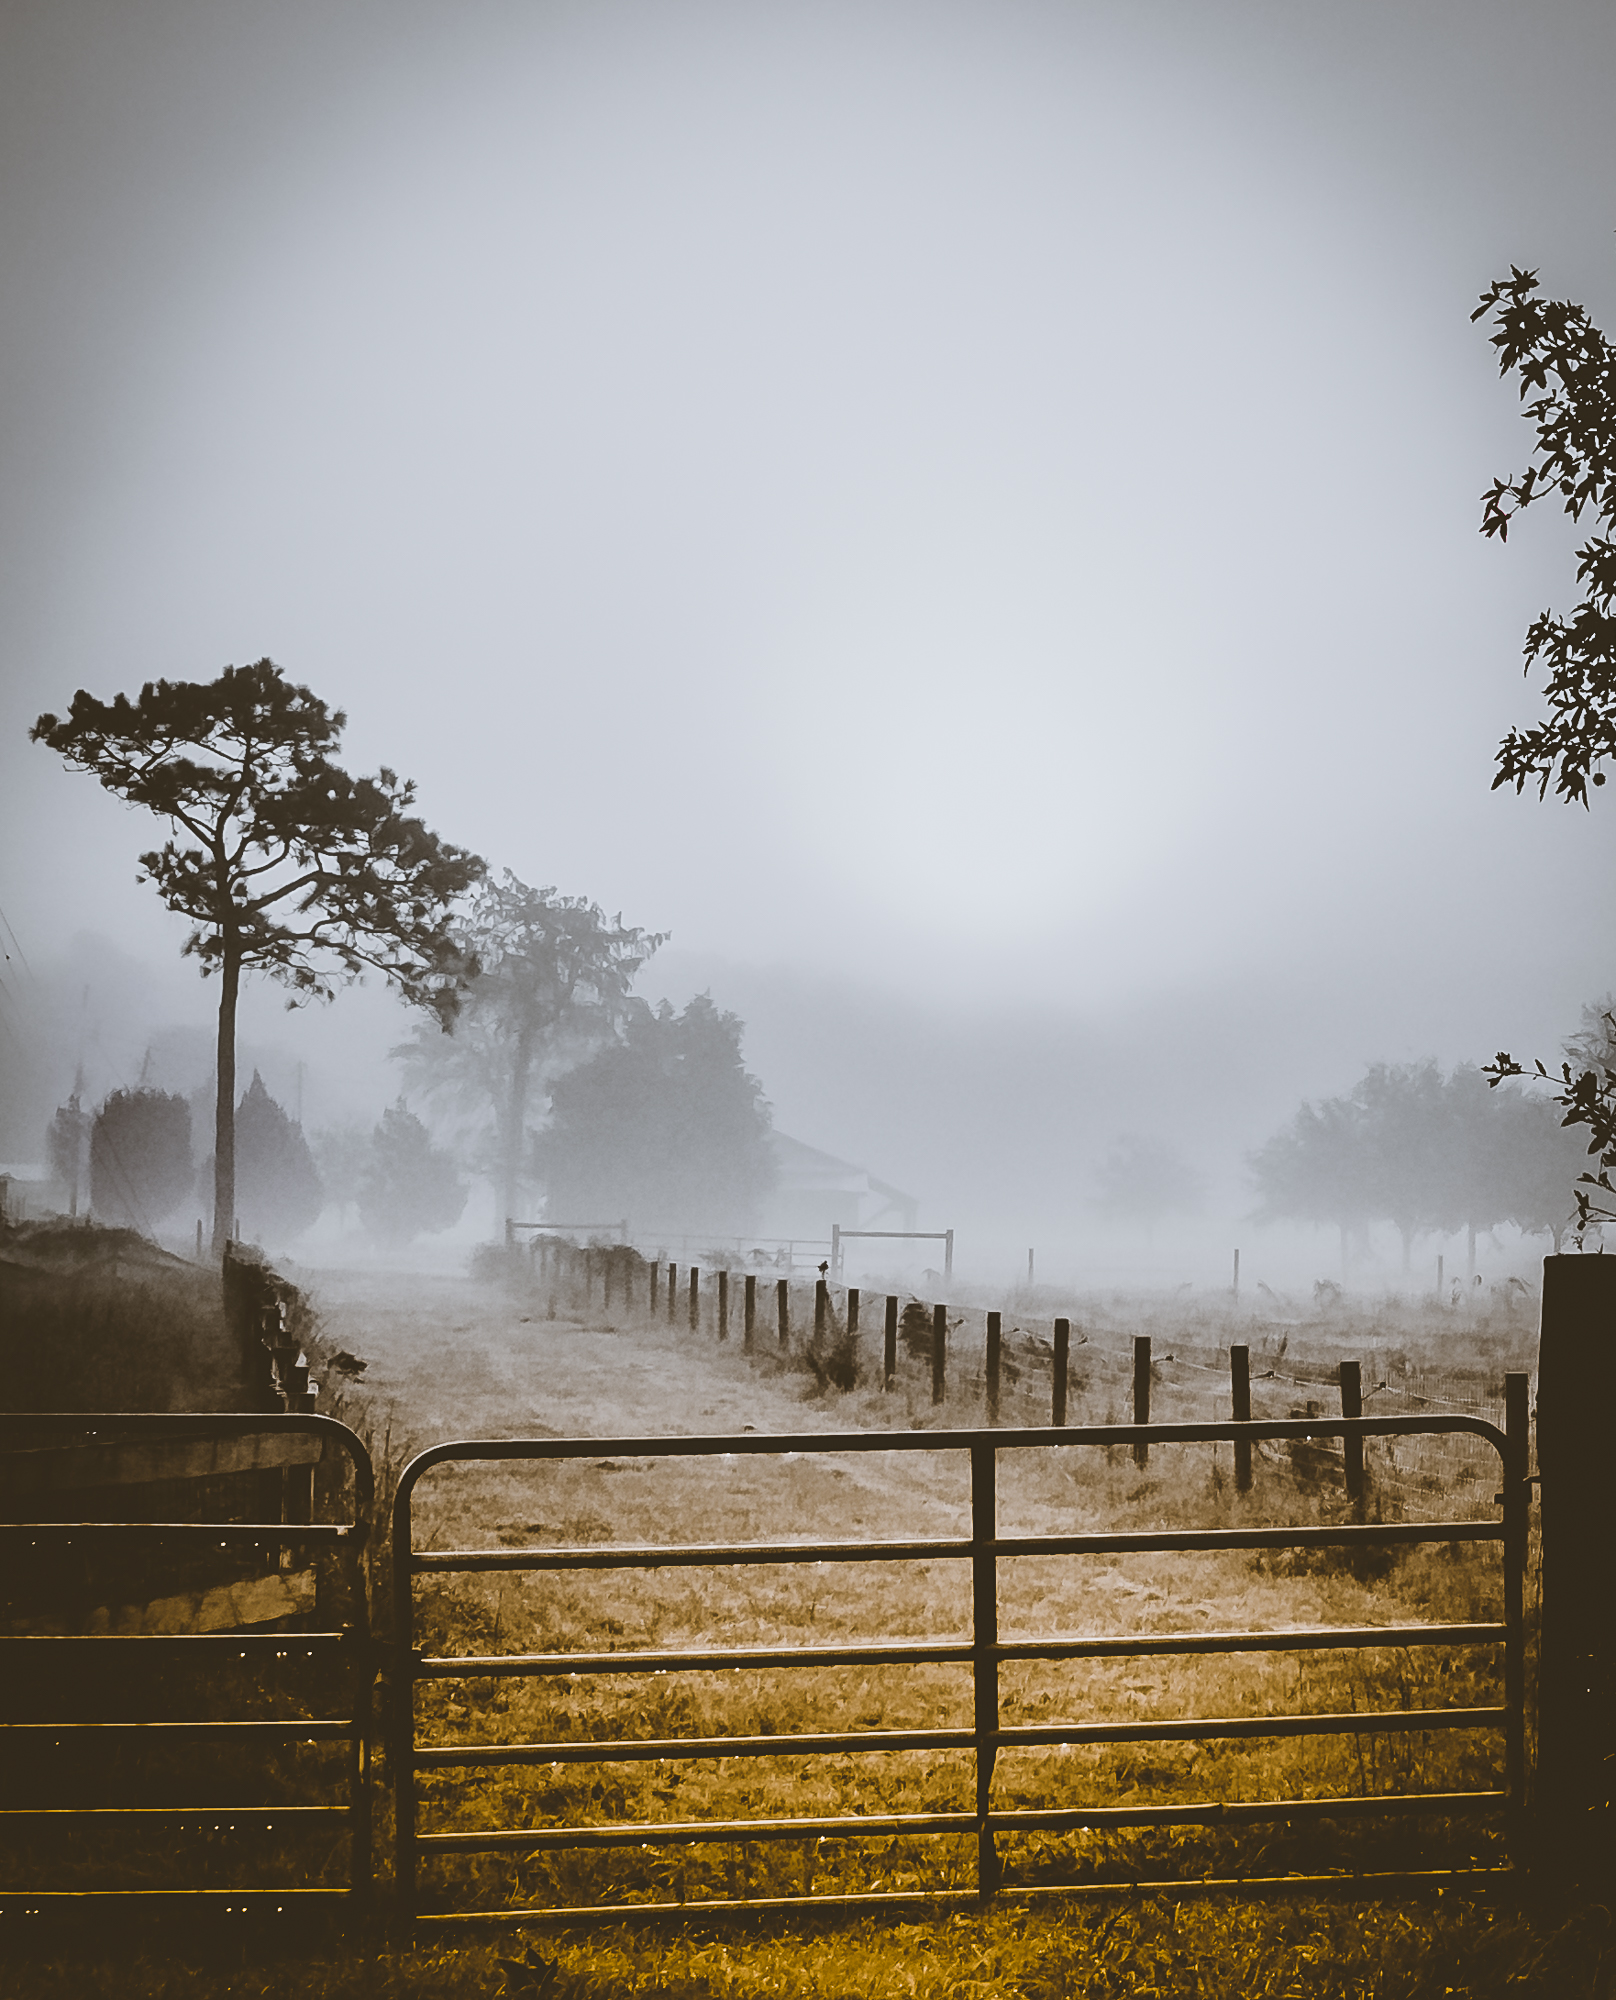 58075A - Foggy morning on the Farm